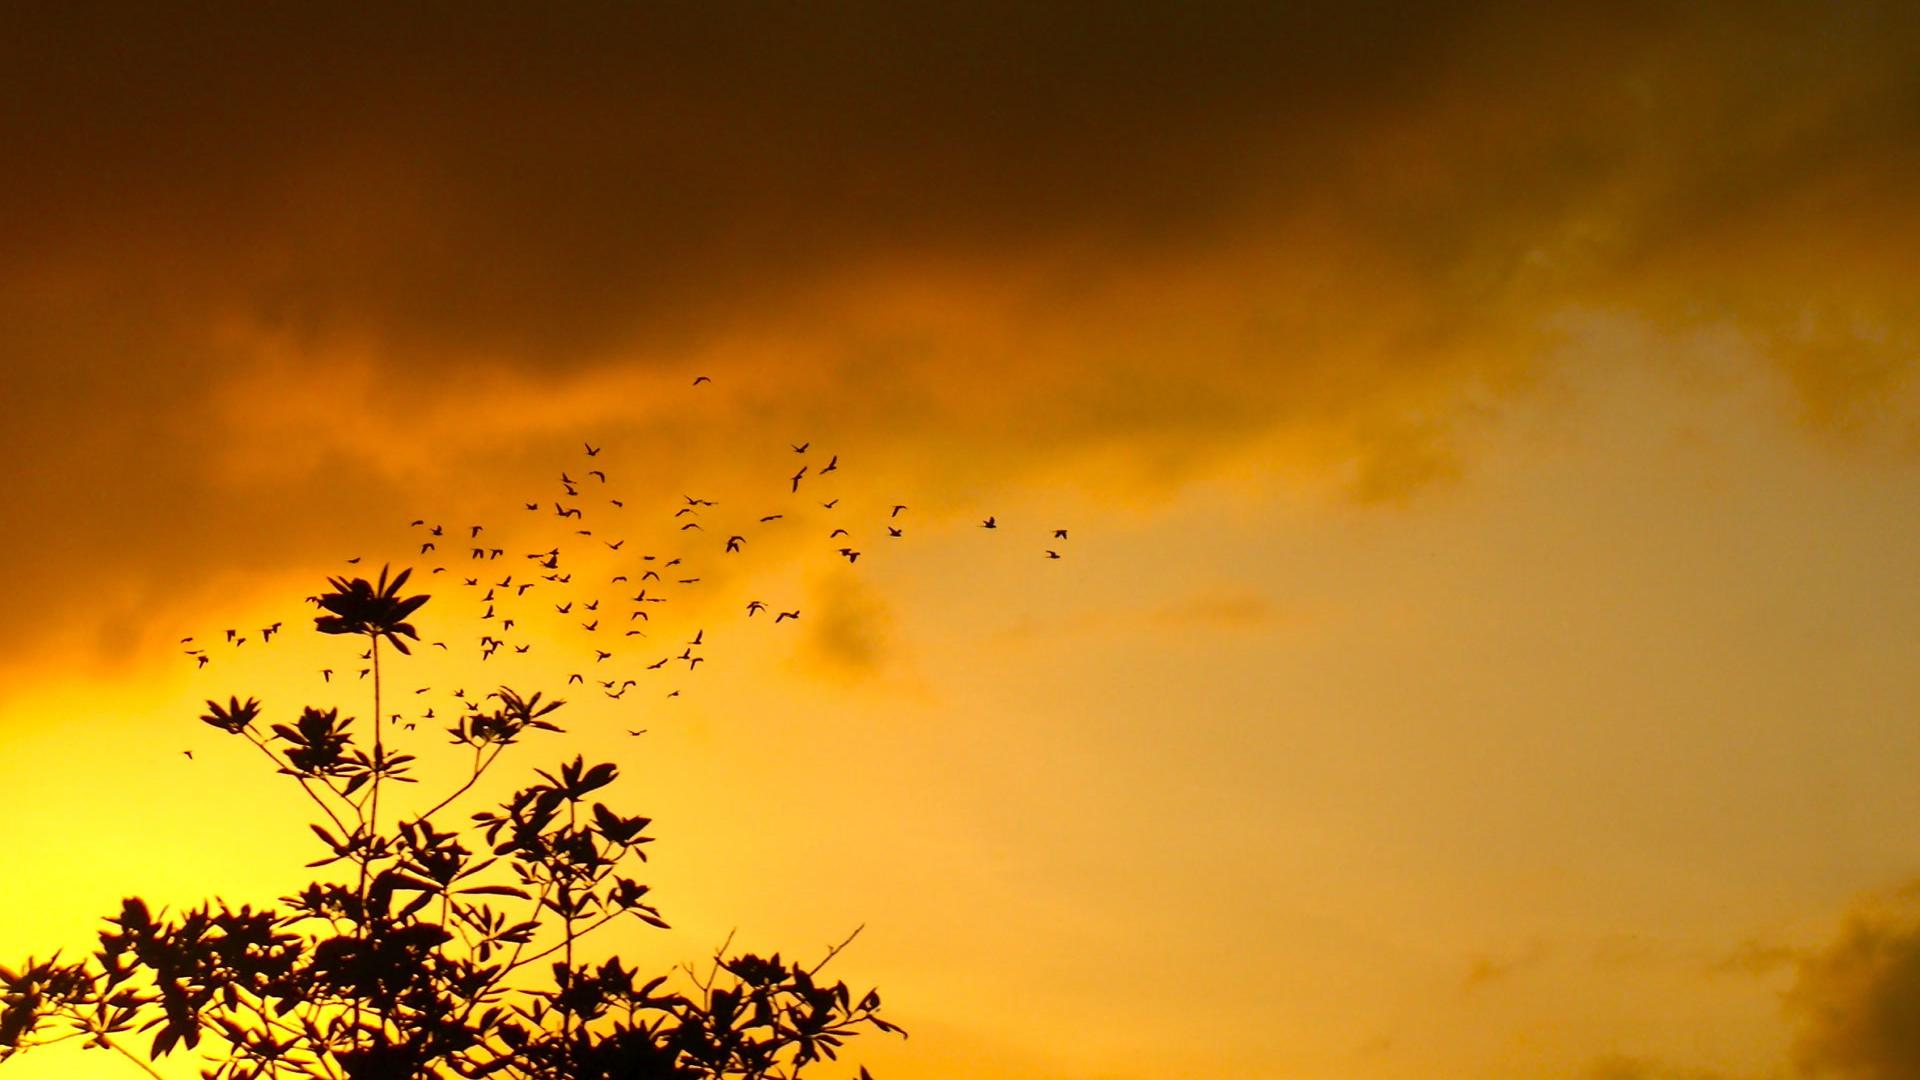 Islamic Quotes In Tamil Wallpapers Beautiful Nature Sunset And Birds Figure Background Hd